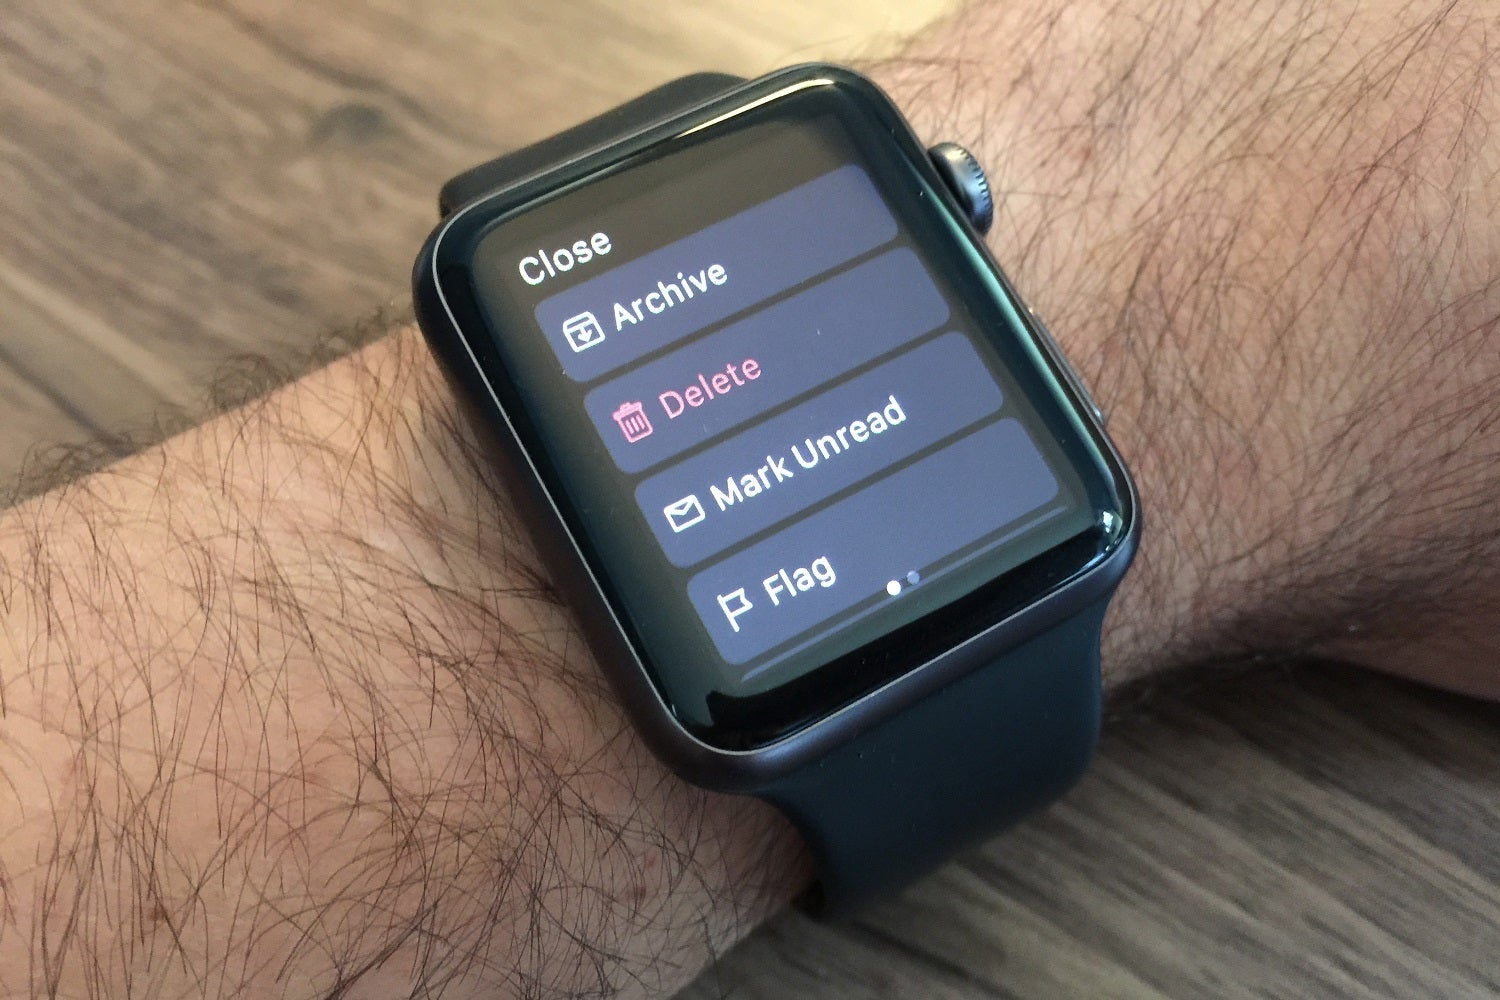 Hands-on with Outlook for Apple Watch: Microsoft's app ...